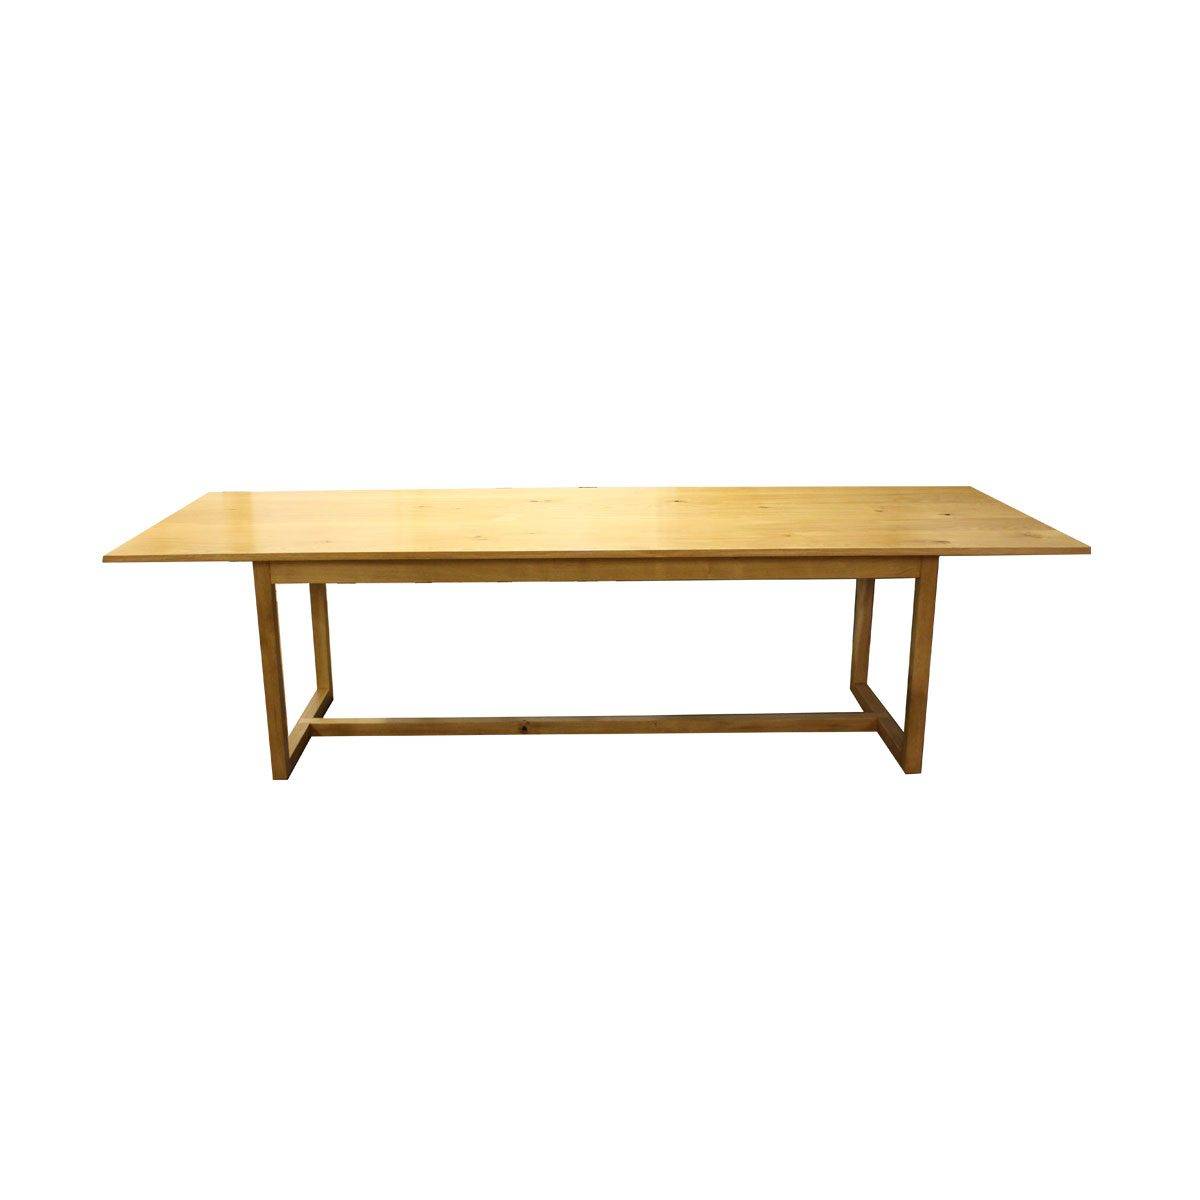 Bespoke Bramley Dining Table Handcrafted in Suffolk